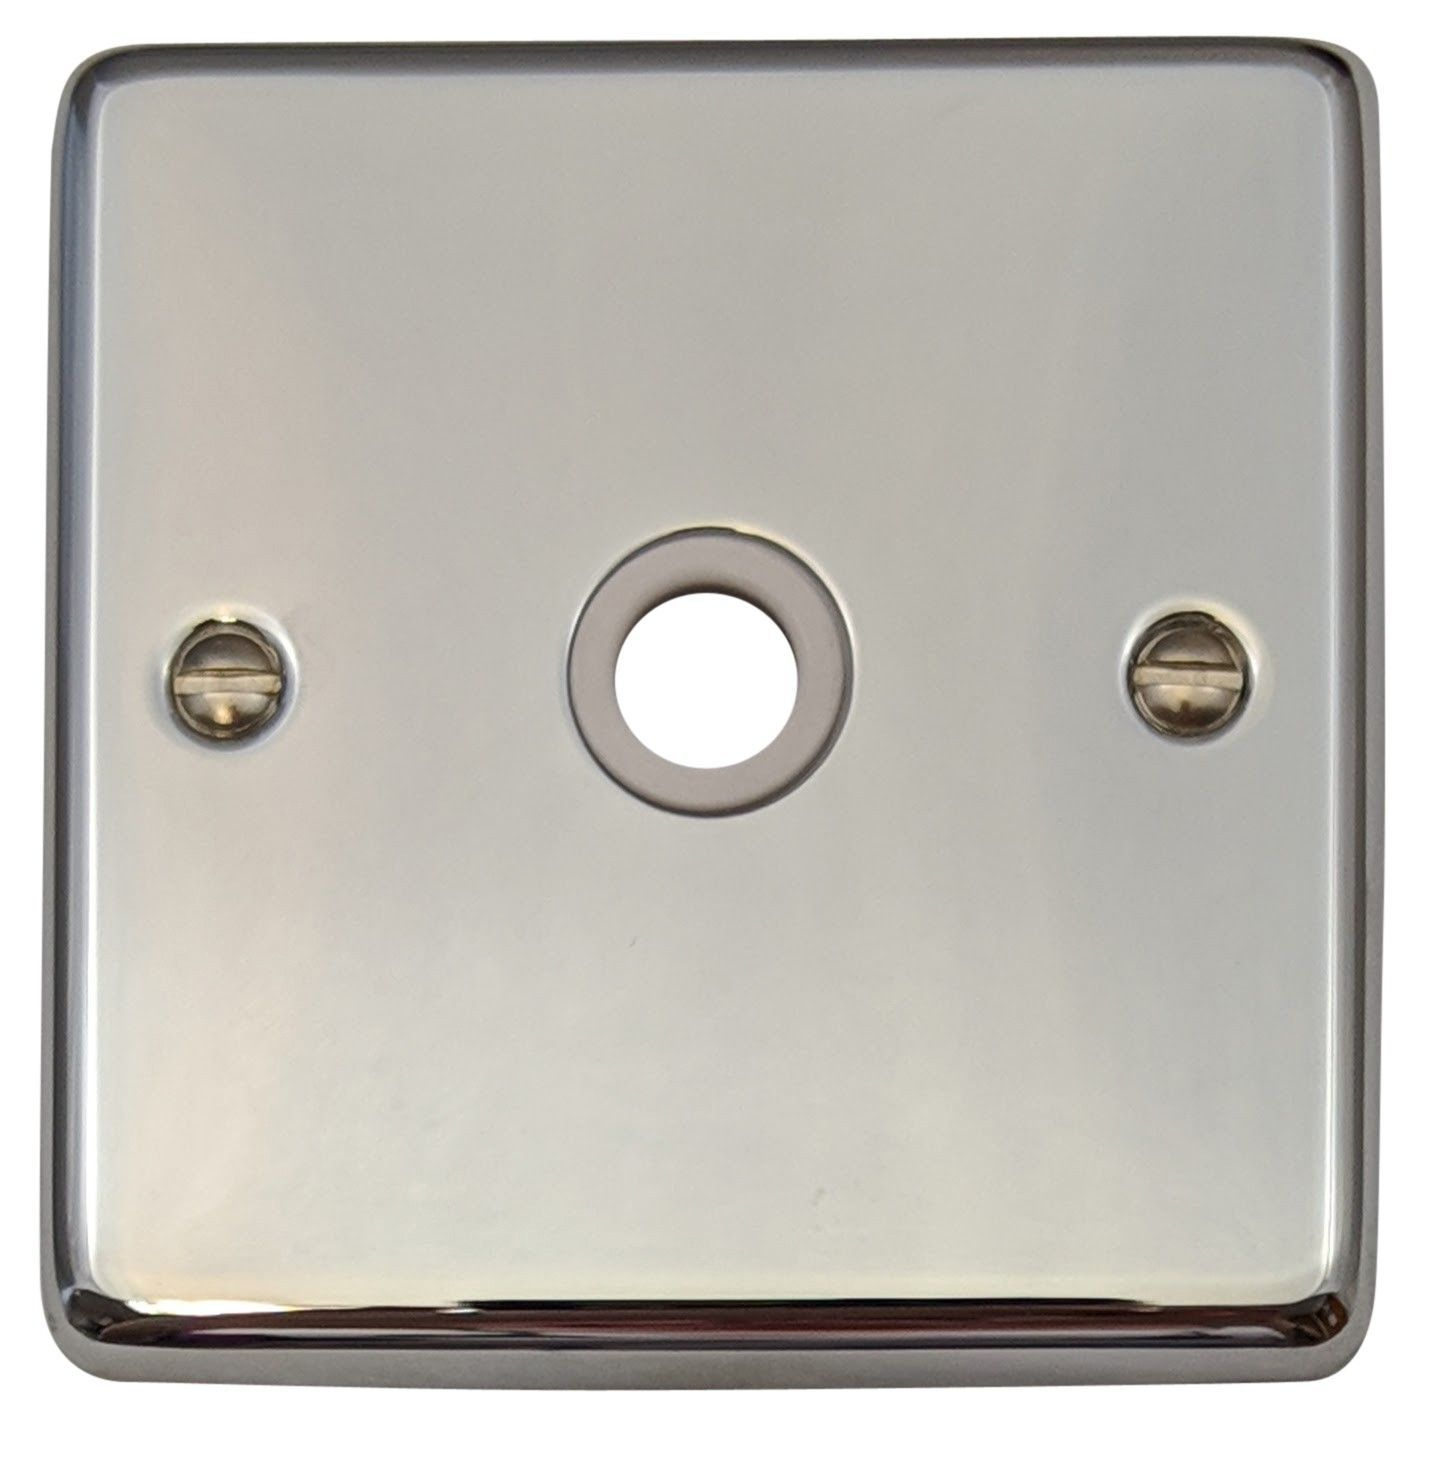 G&H CC79W Standard Plate Polished Chrome 1 Gang Flex Outlet Plate